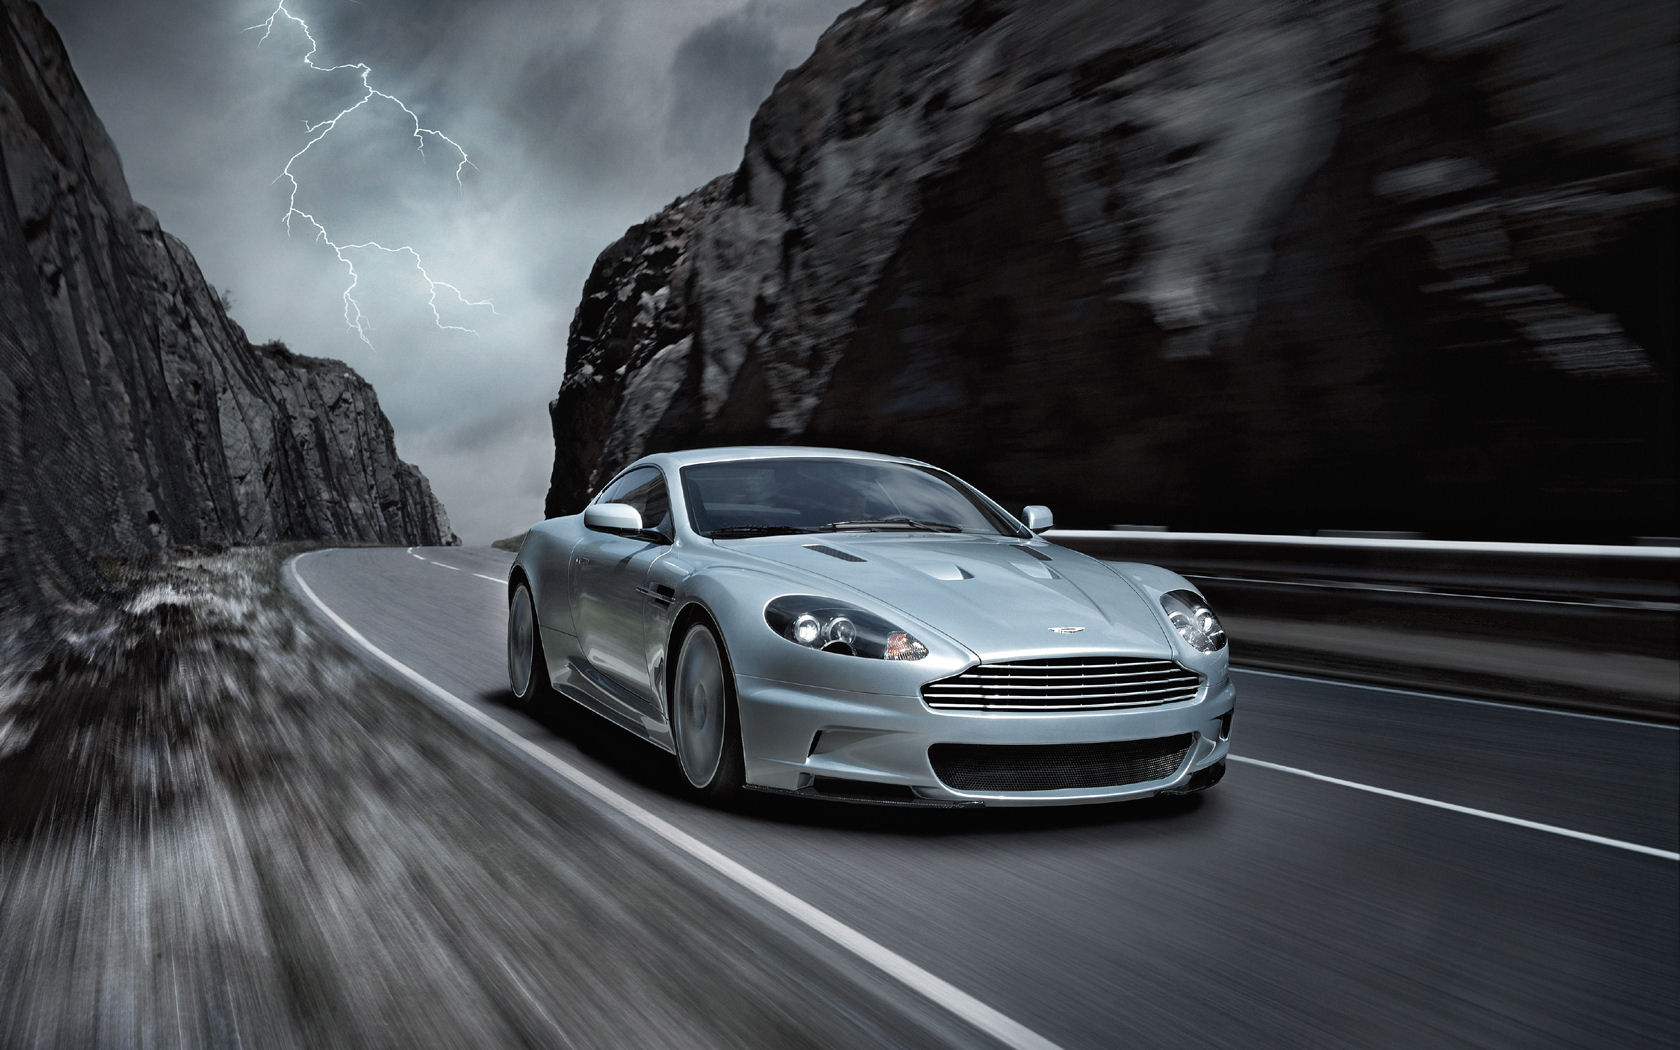 aston martin dbs v12 wallpaper - photo #5